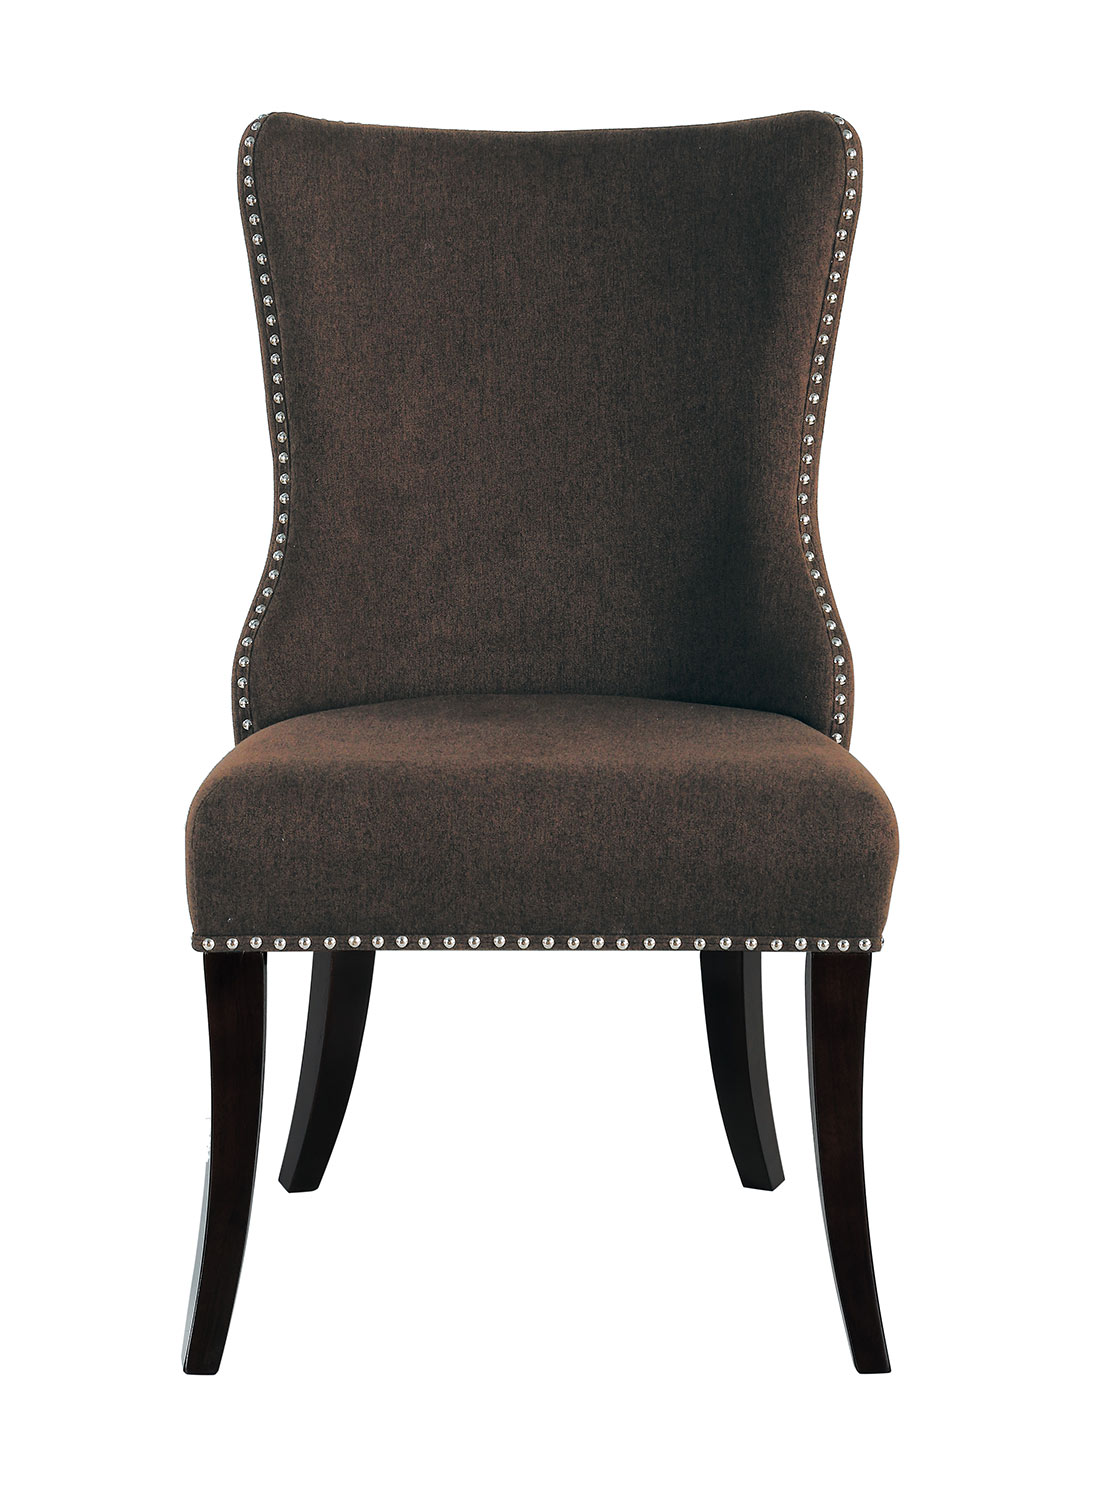 Homelegance Salema Side Chair - Chocolate - Dark Brown